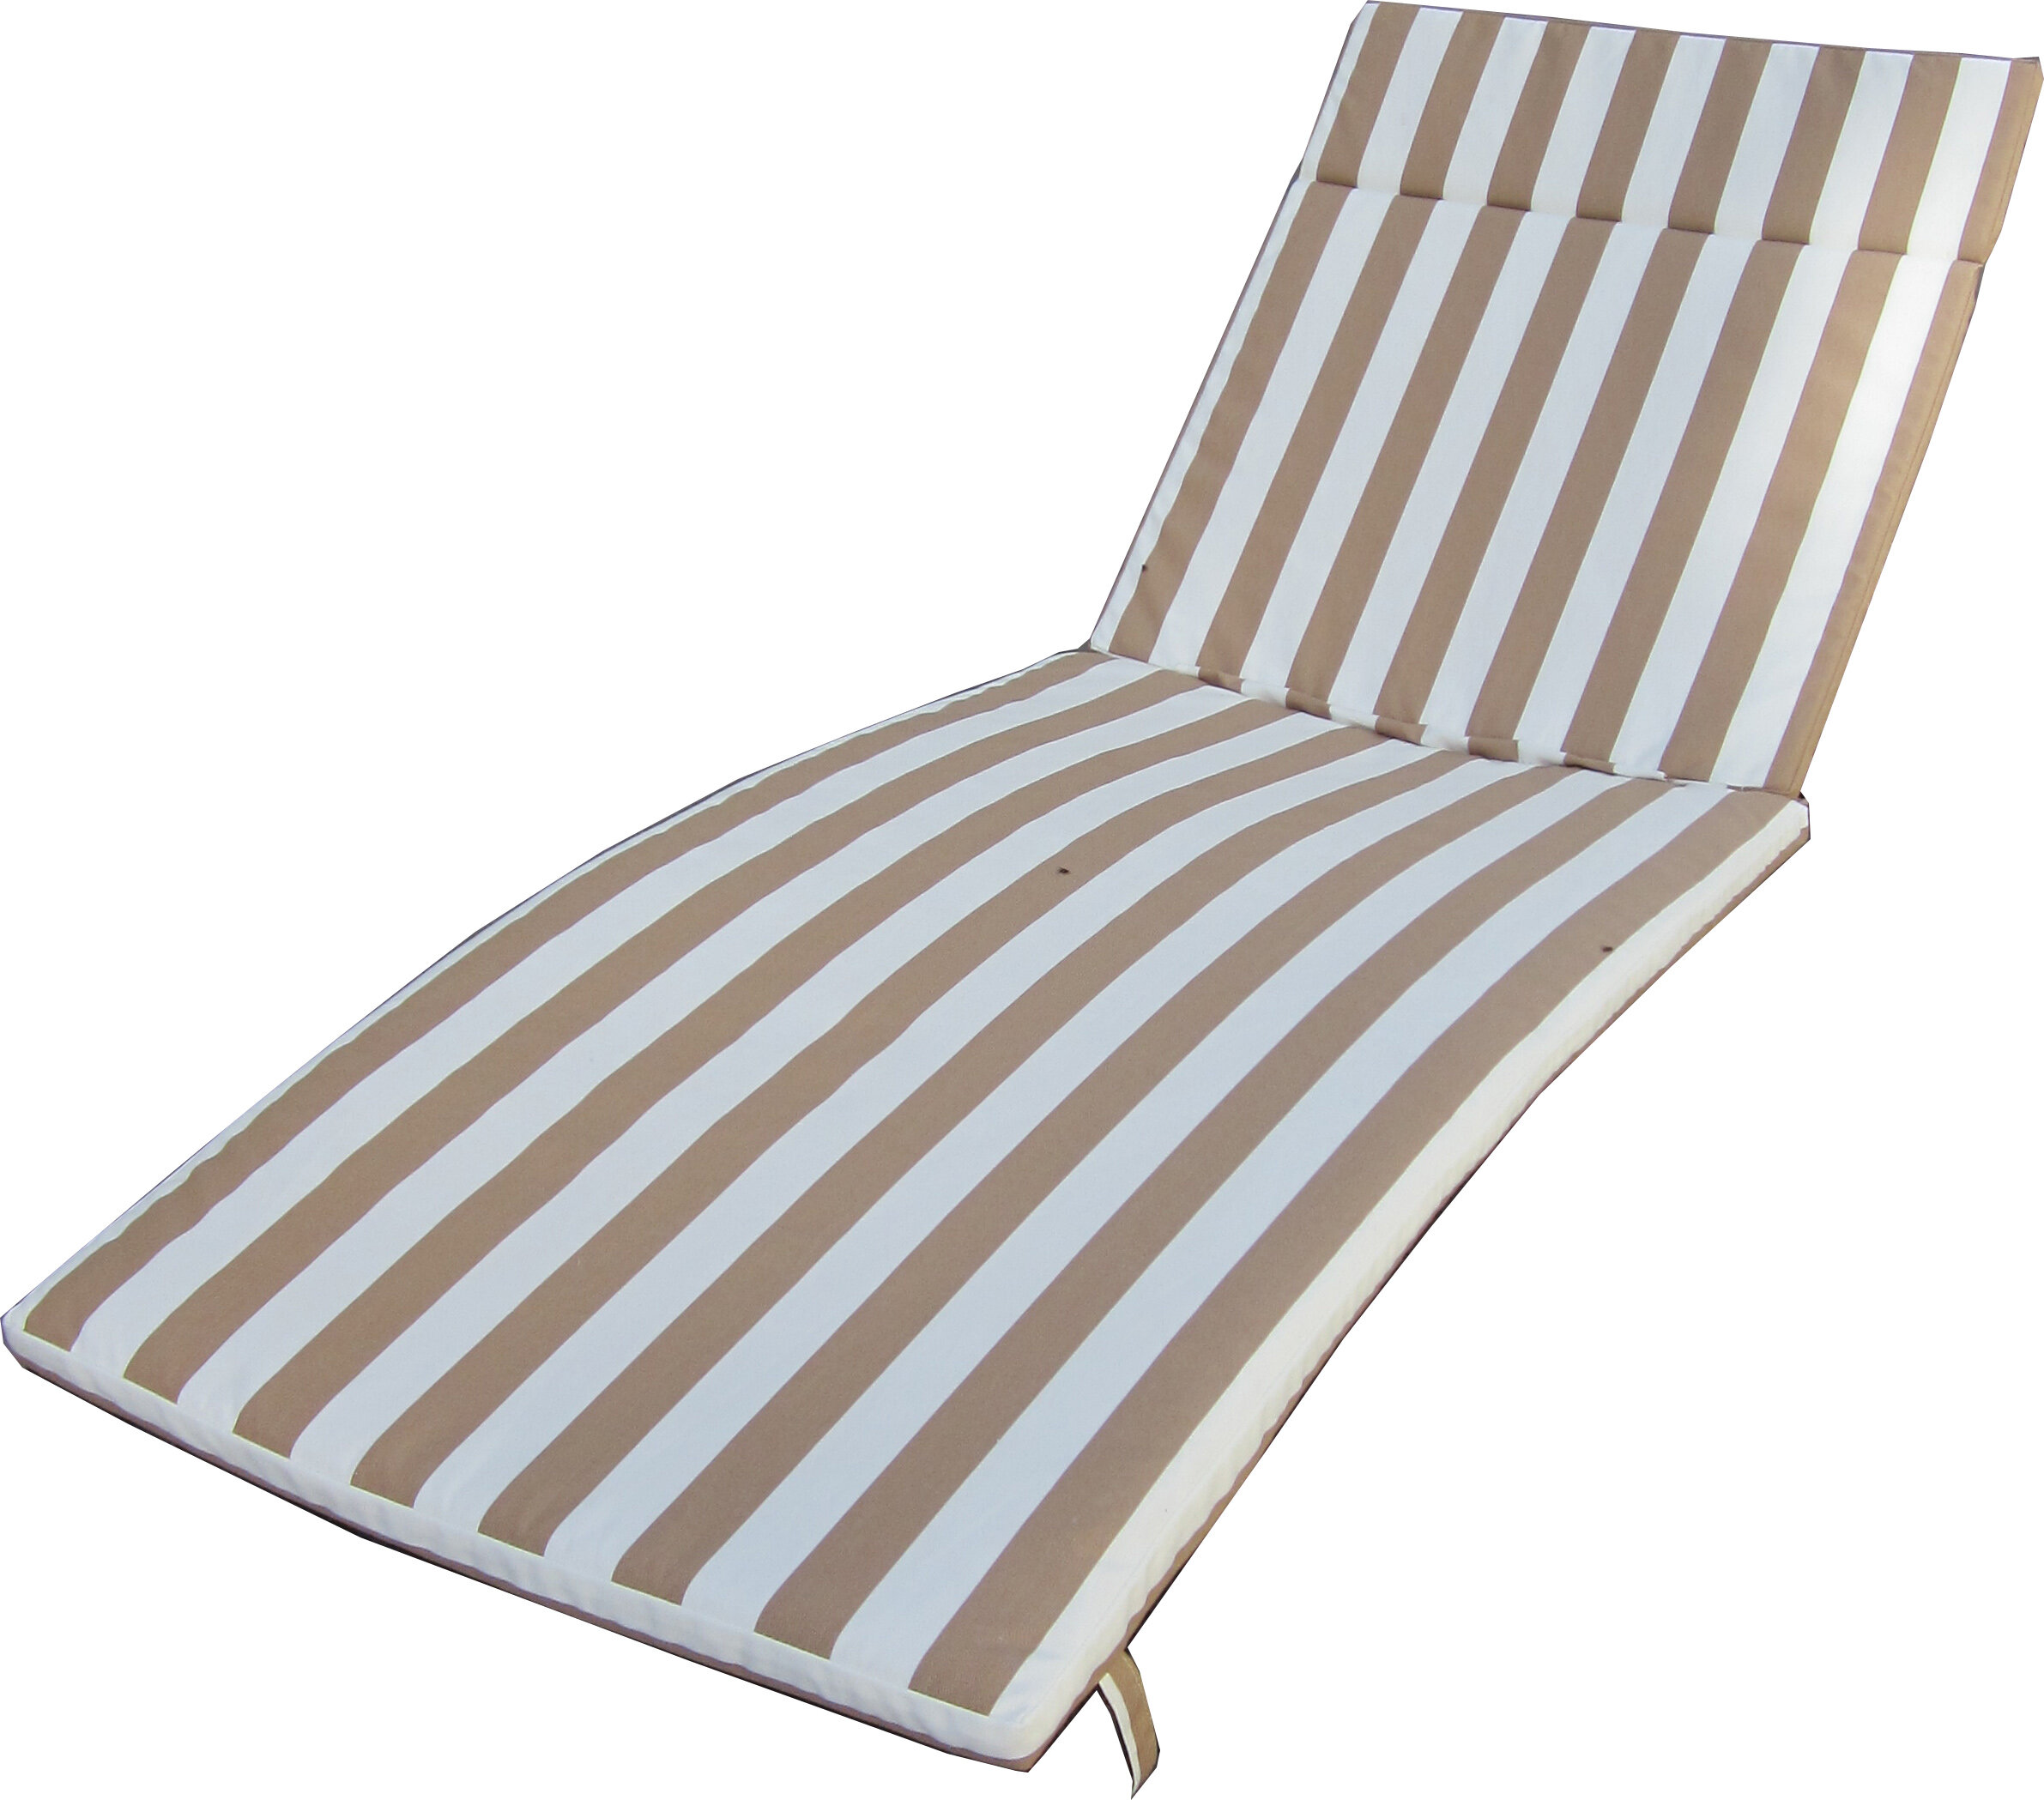 Beachcrest Home Polyester Indoor Outdoor Chaise Lounge Cushion Reviews Wayfair